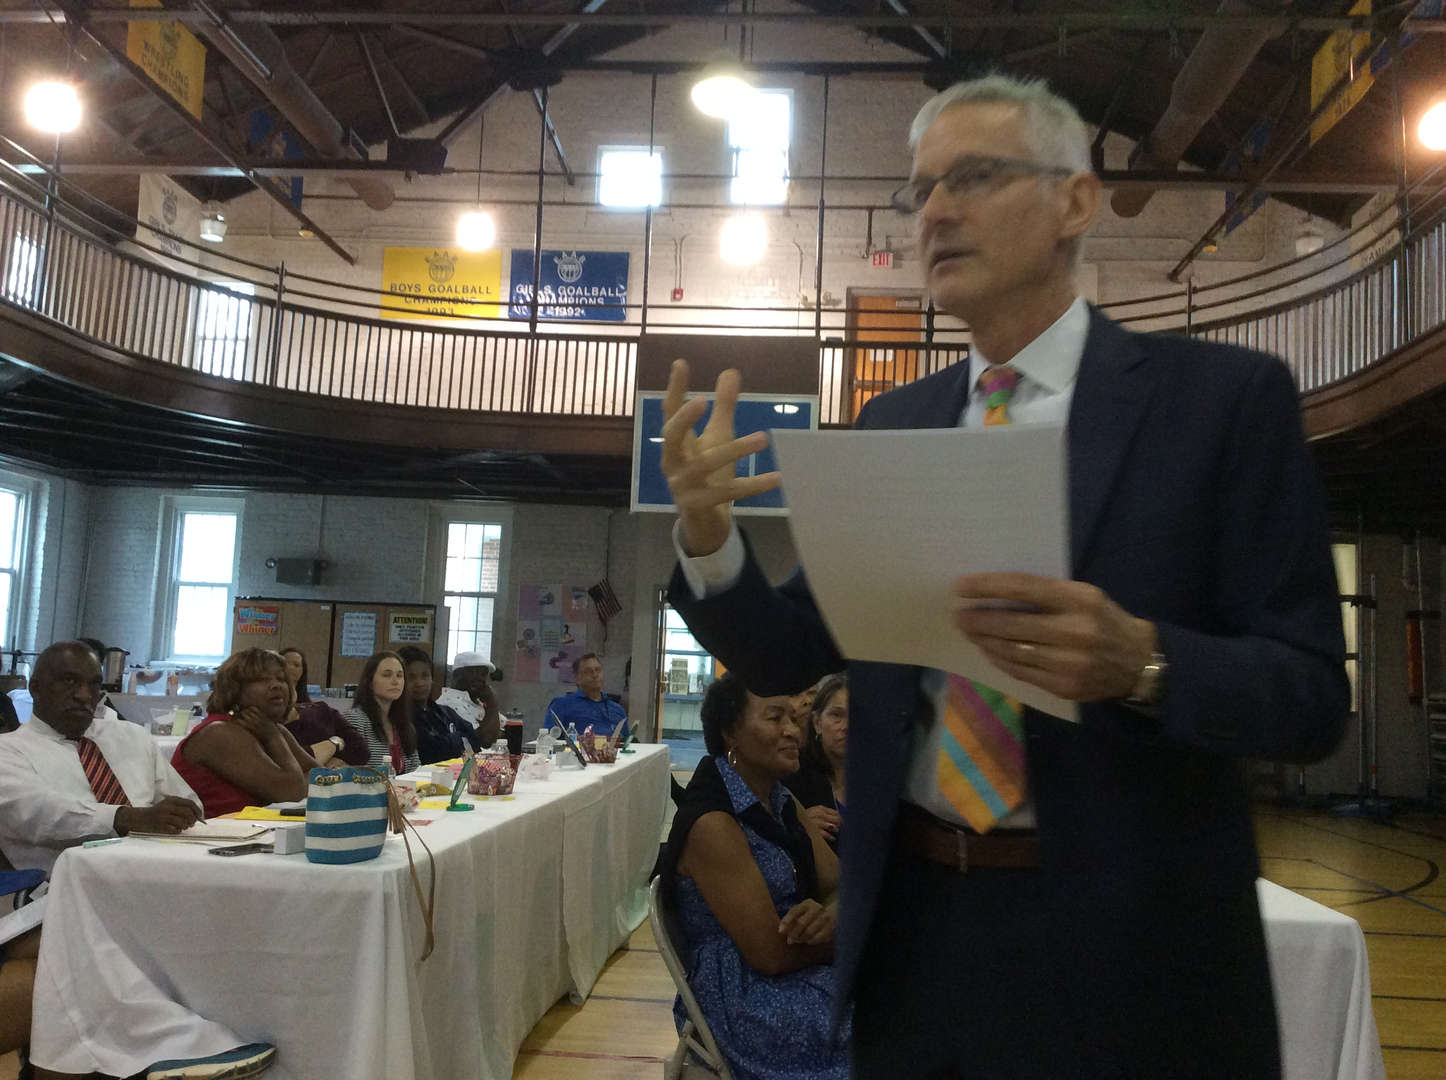 Mr. Hawting is expressing himself using hand gestures as faculty and staff look attentively.